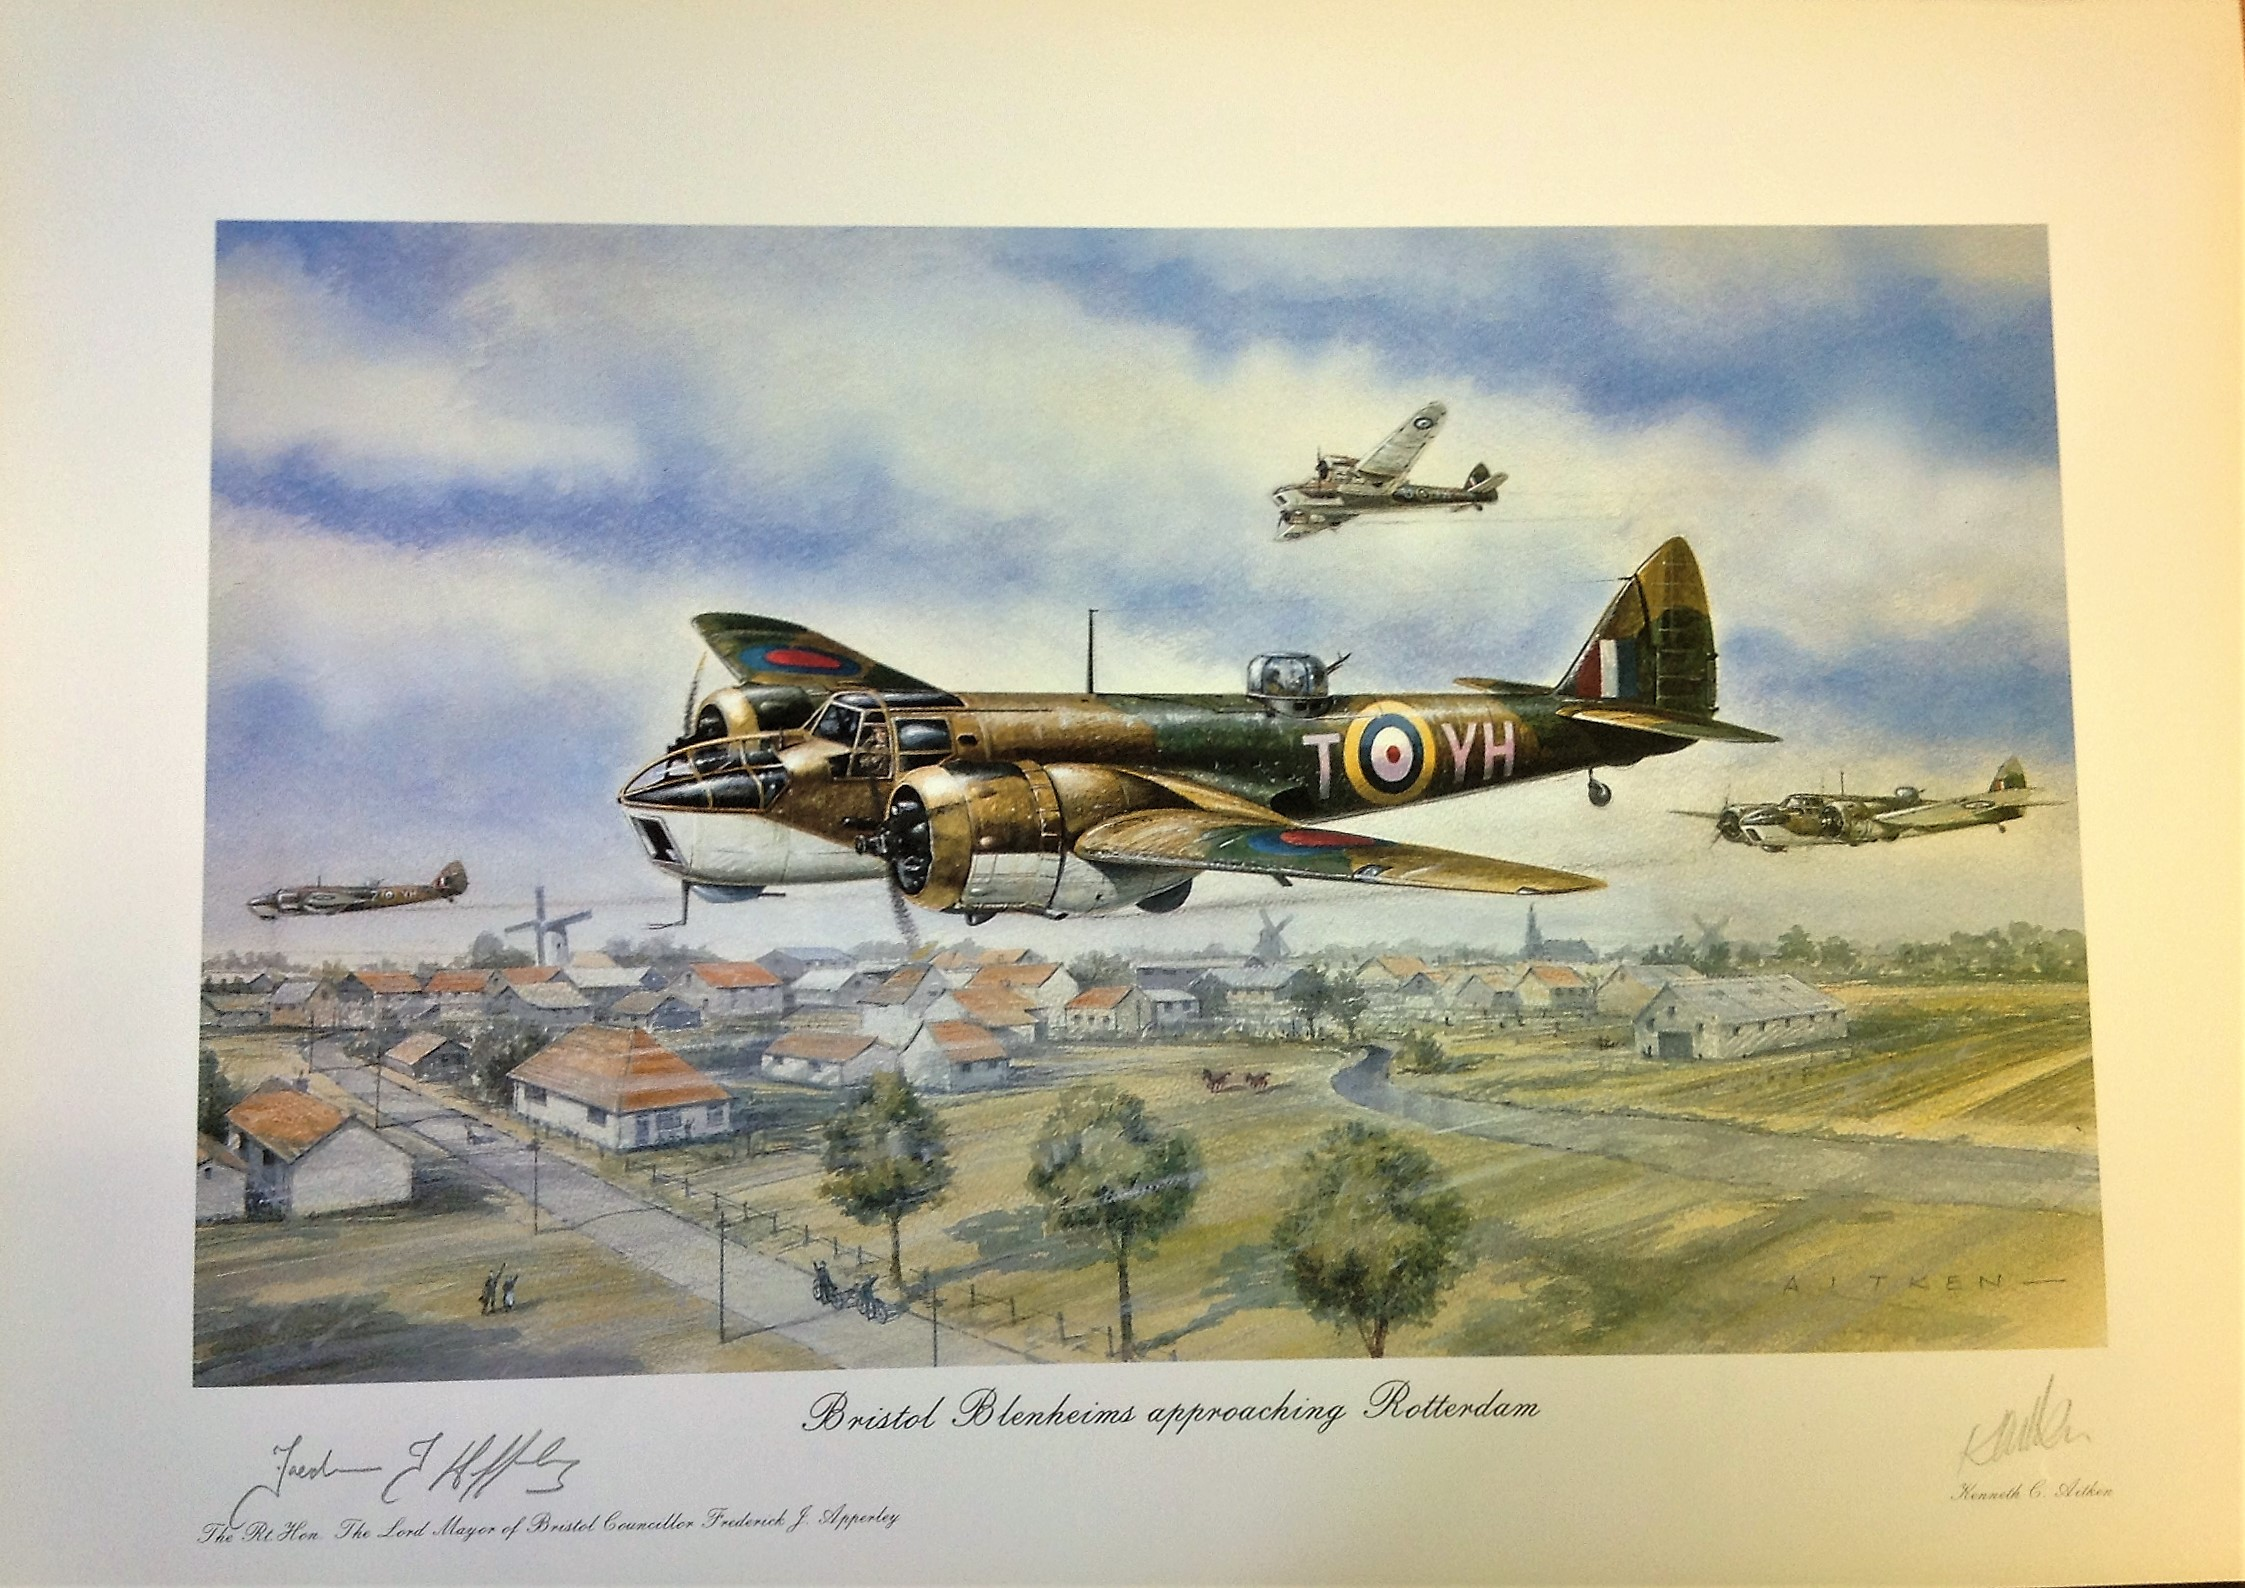 Lot 120 - World War Two print approx 24x20 titled Bristol Blenheims approaching Rotterdam by the artist